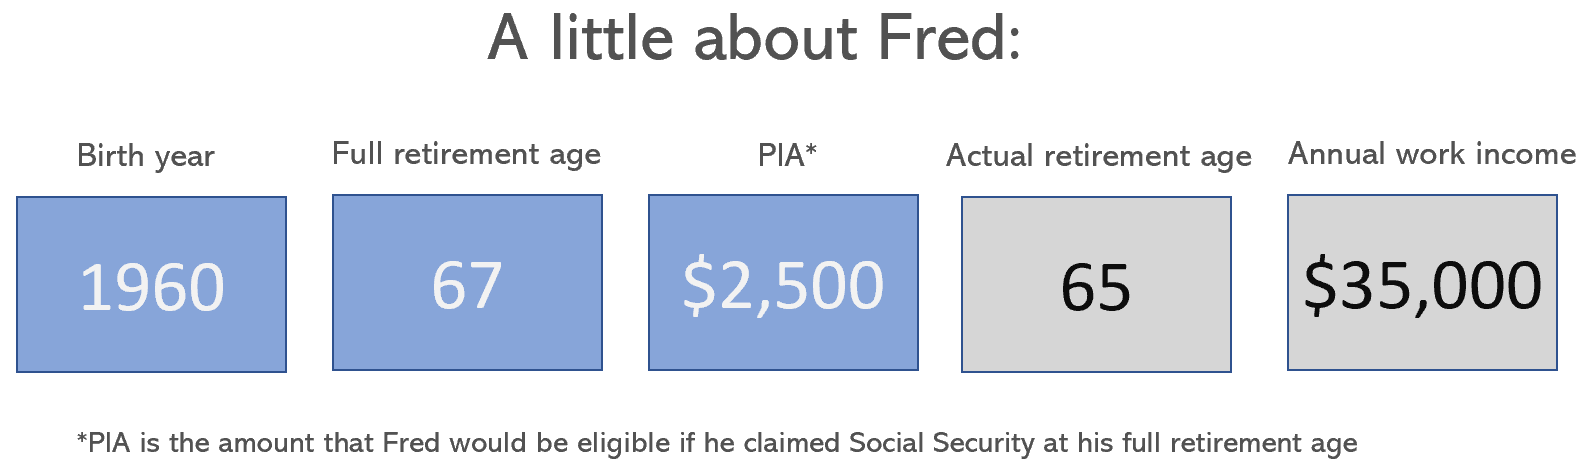 fred's facts